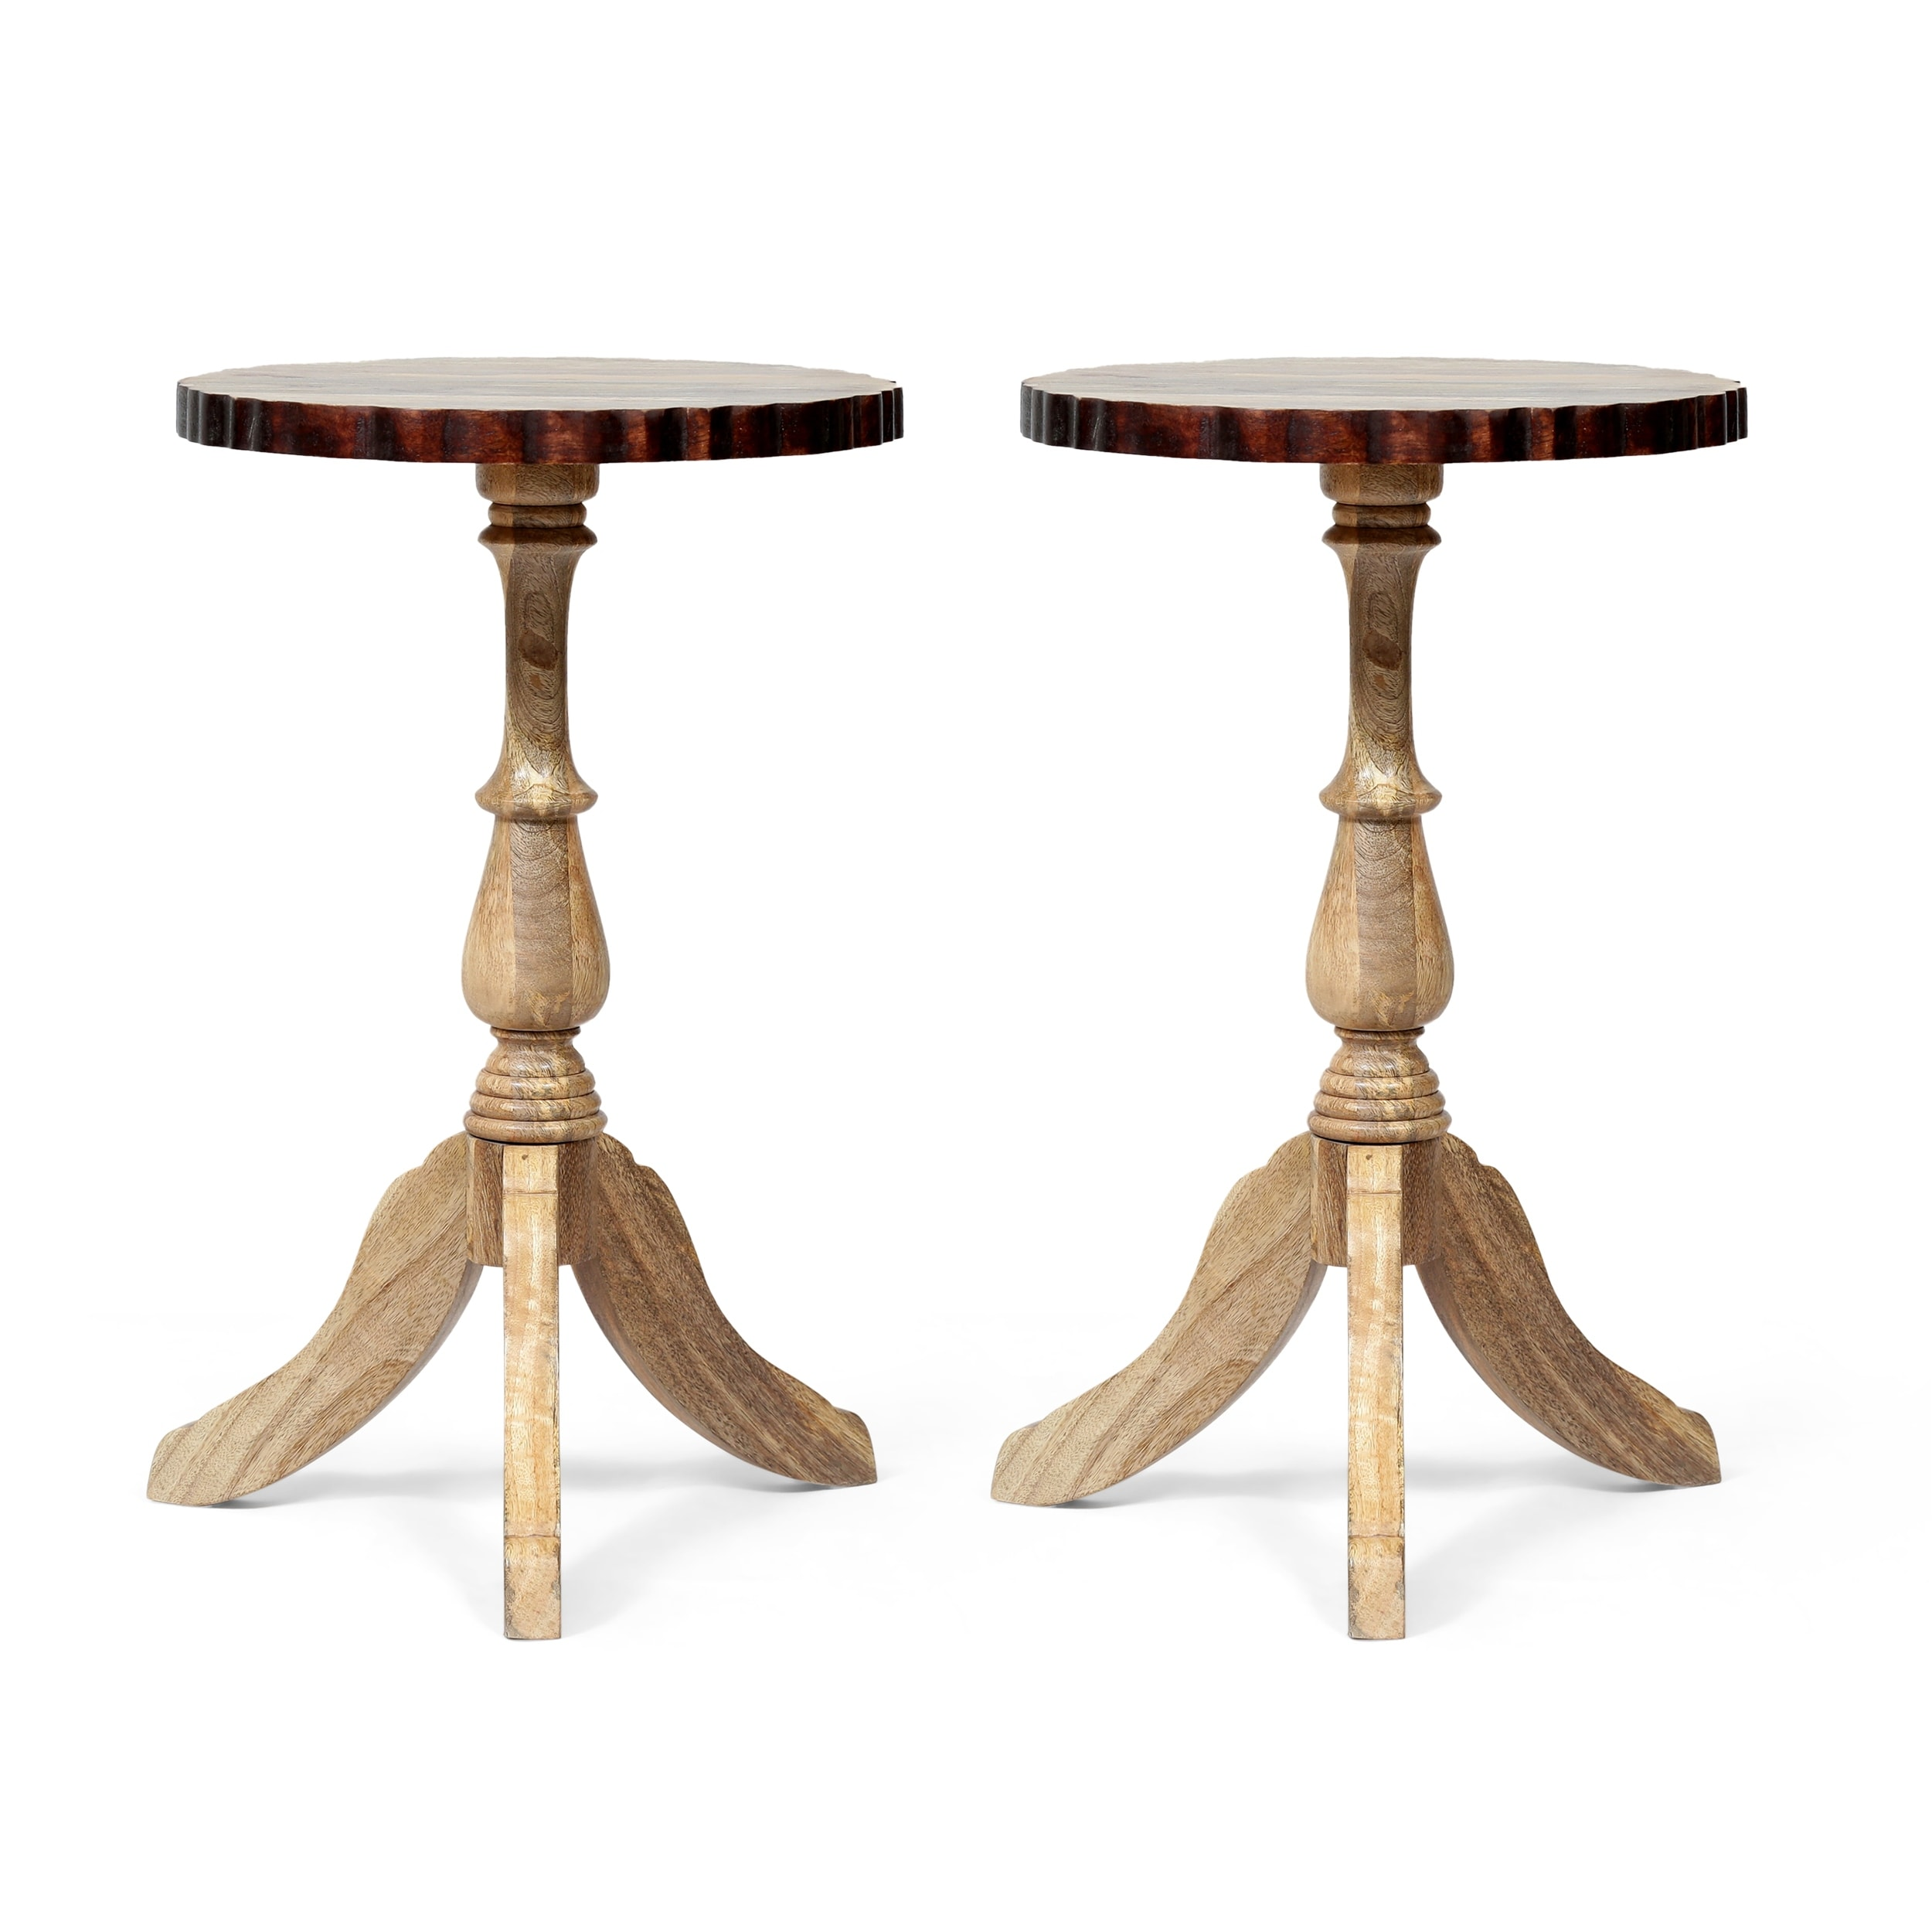 Shop Mckay Mango Wood End Table Set O 2 By Christopher Knight Home Overstock 32007045